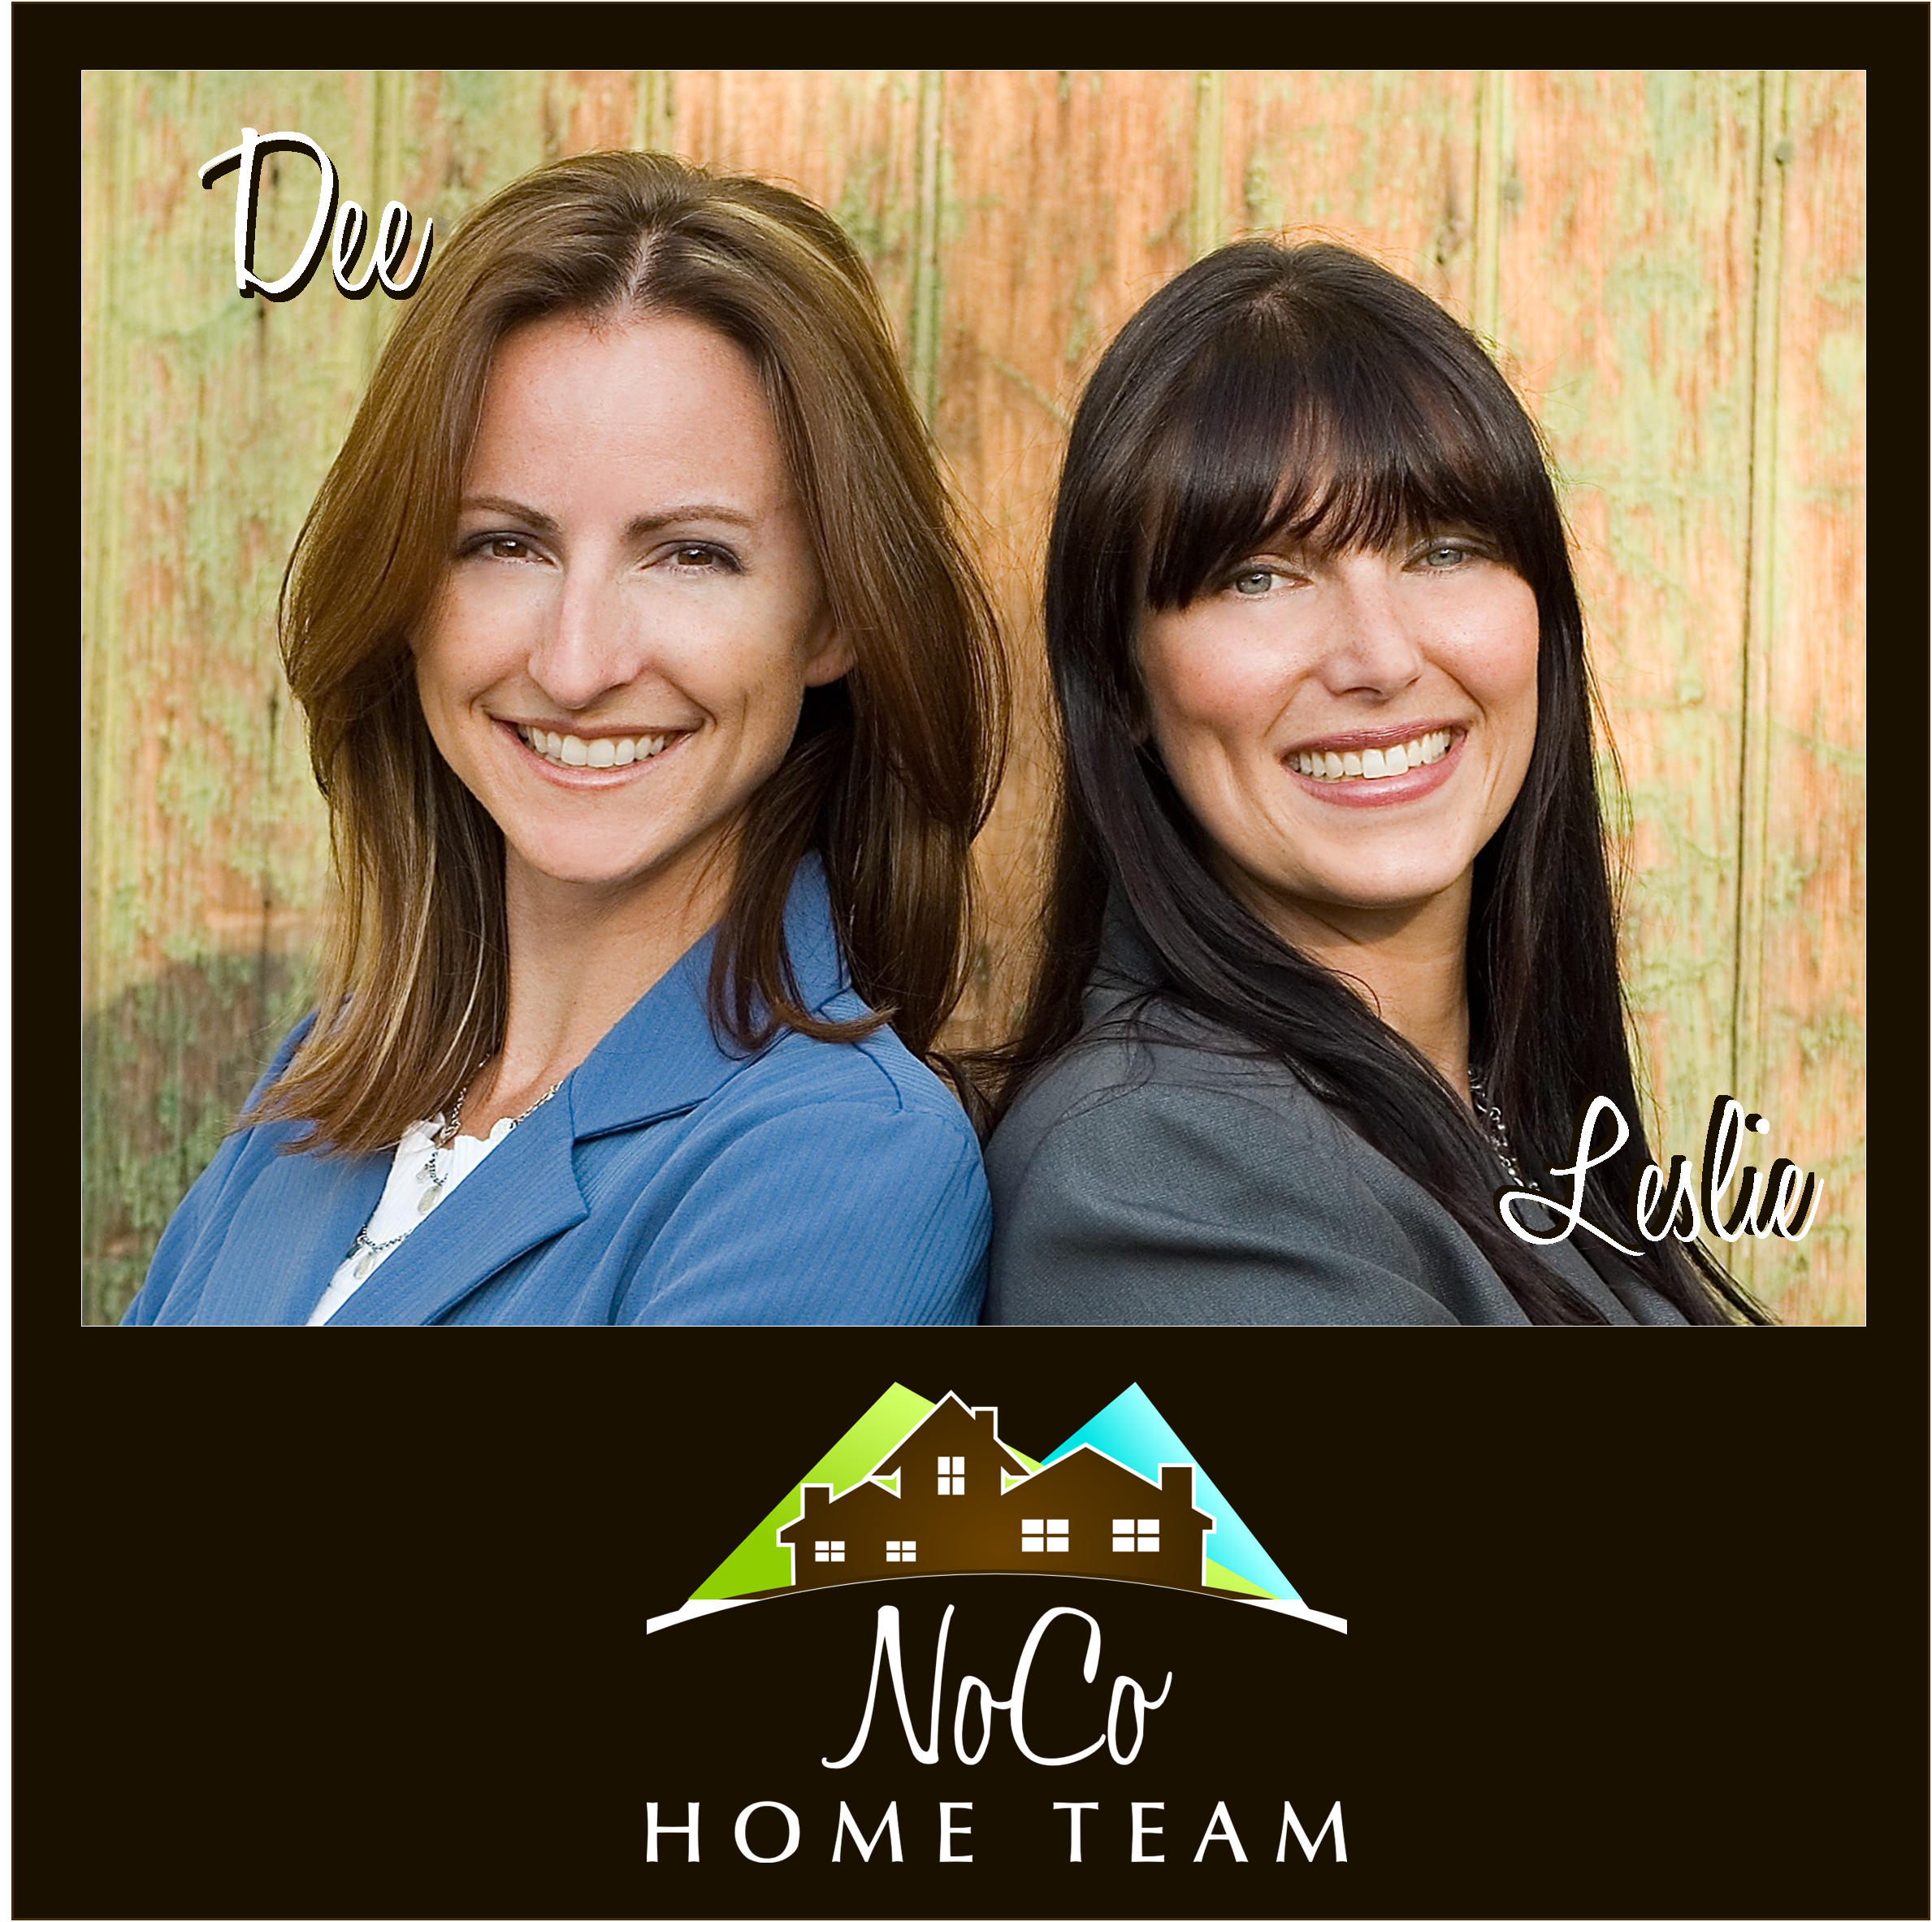 Dee Bundy and Leslie Leis - the NoCo Home Team